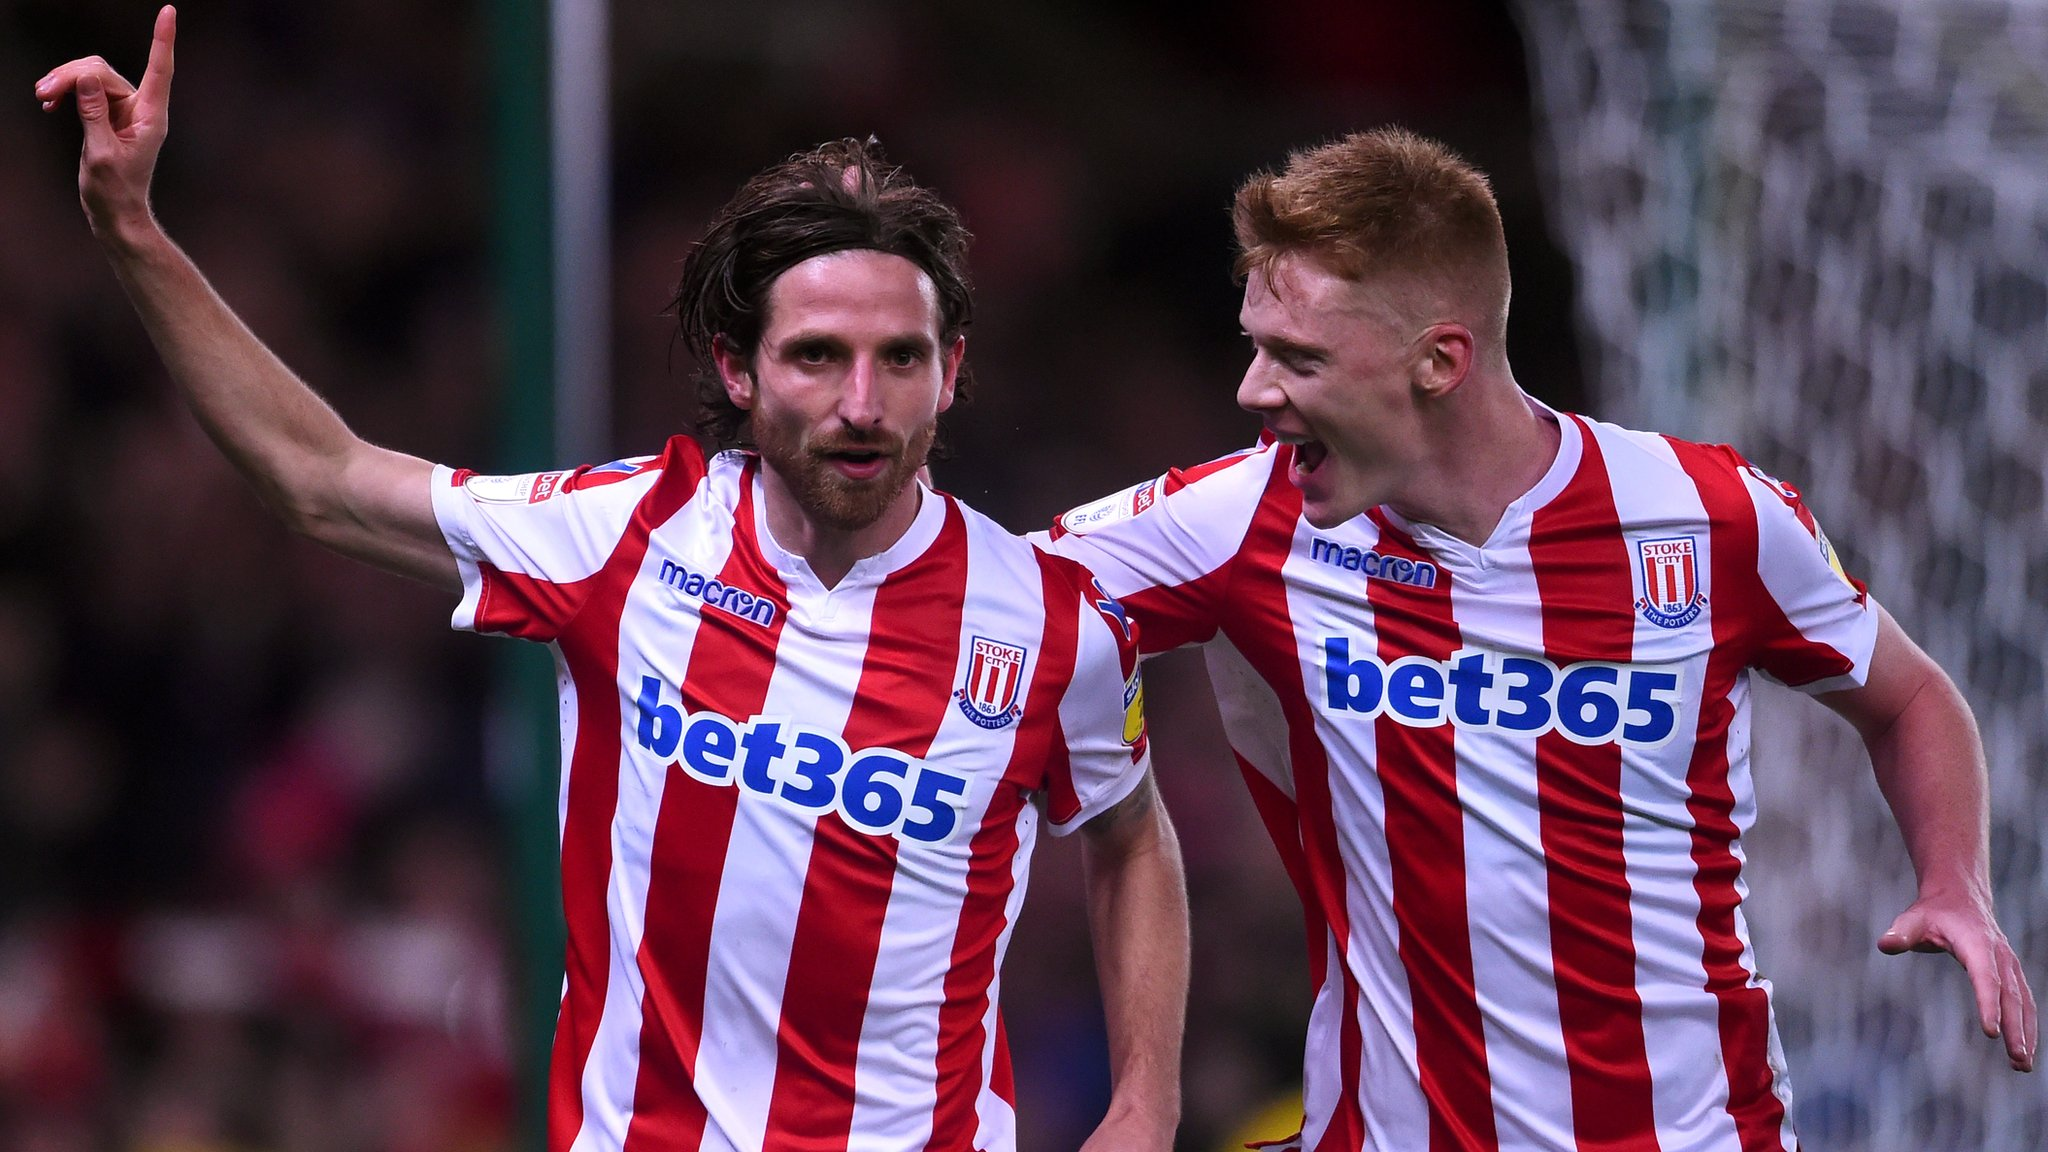 Stoke City 2-0 Ipswich Town: Potters pile more misery on former boss Lambert